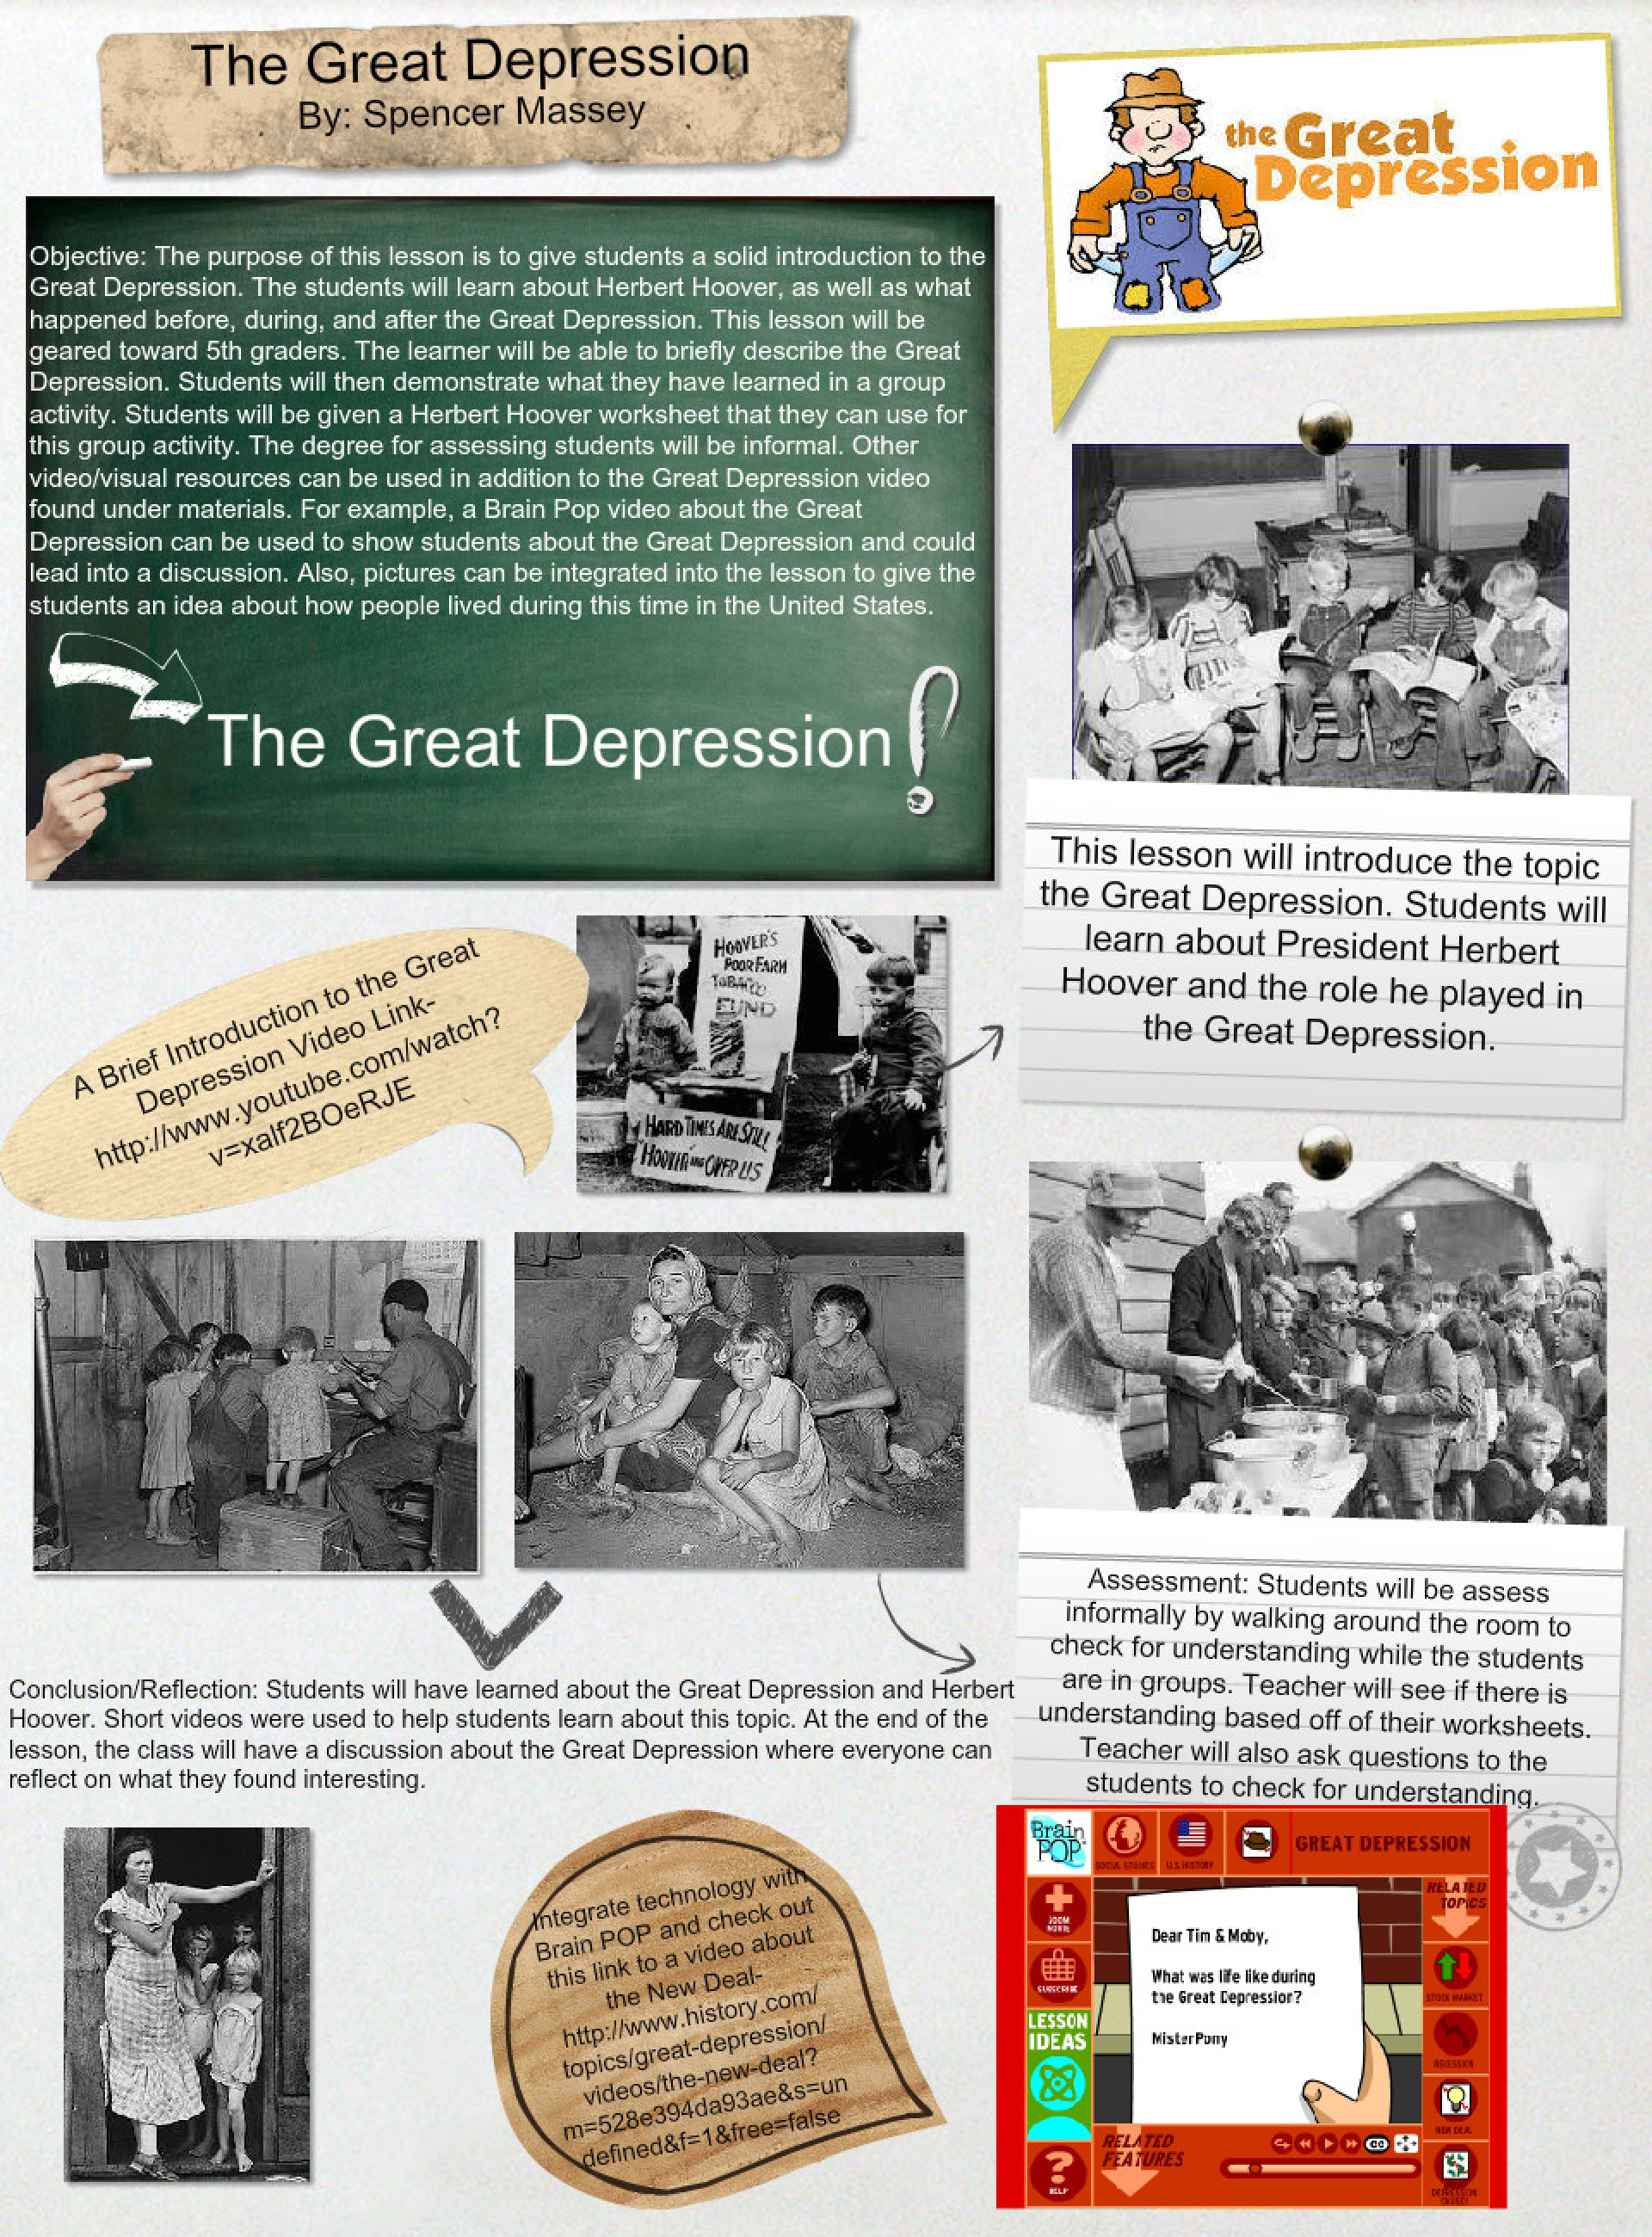 010 Conclusion Of The Great Depression Essay Example Amazing 1920